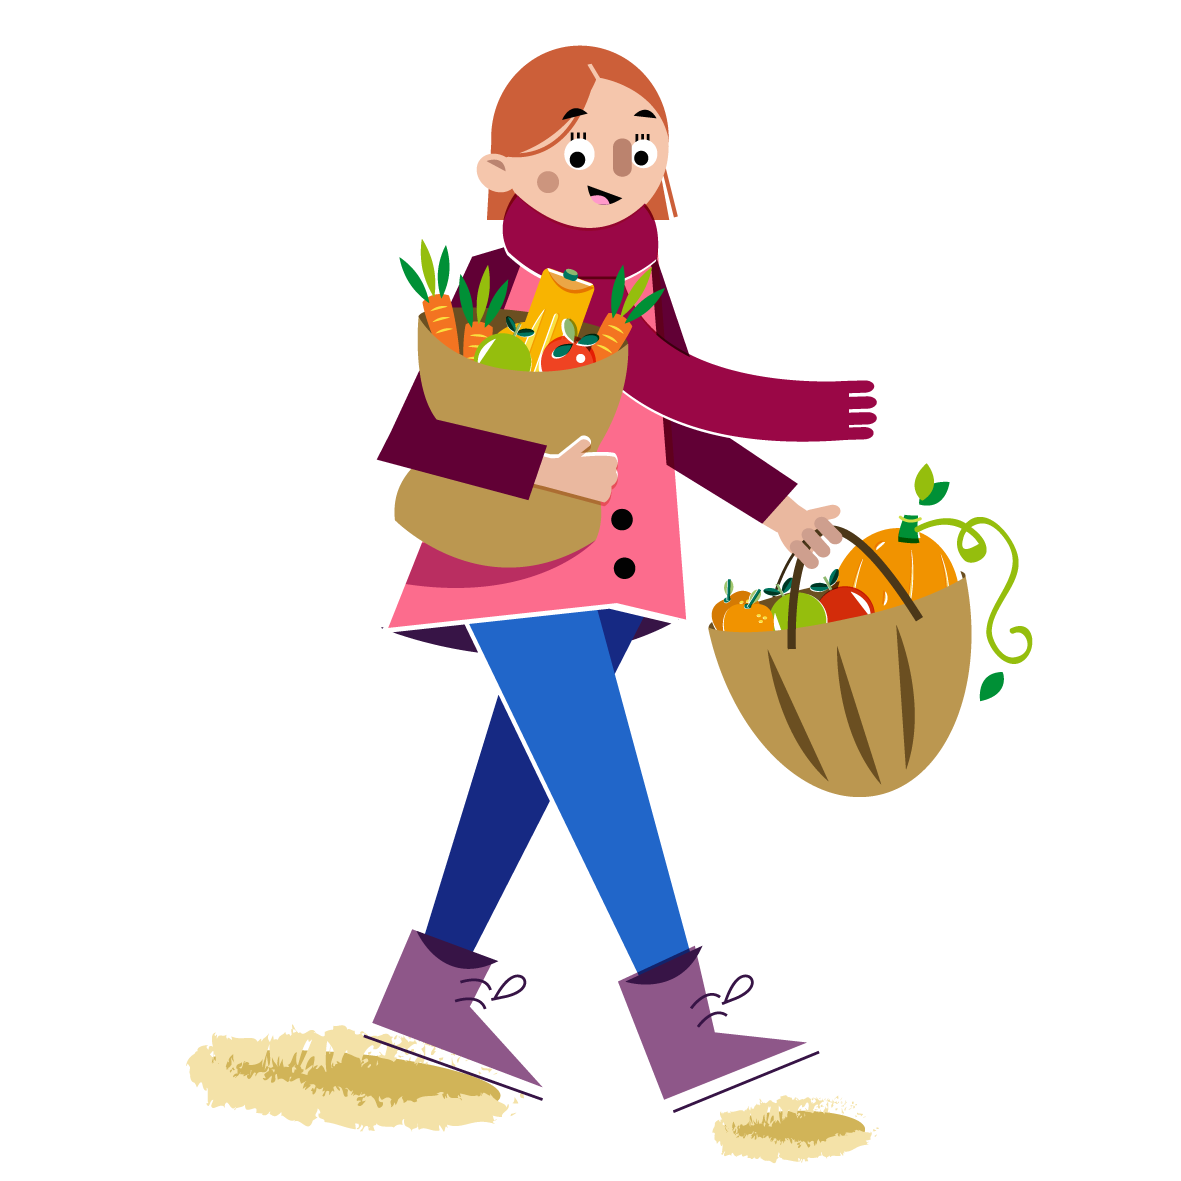 Fresh from the market - Vector Illustration © Emeline Barrea, All rights reserved